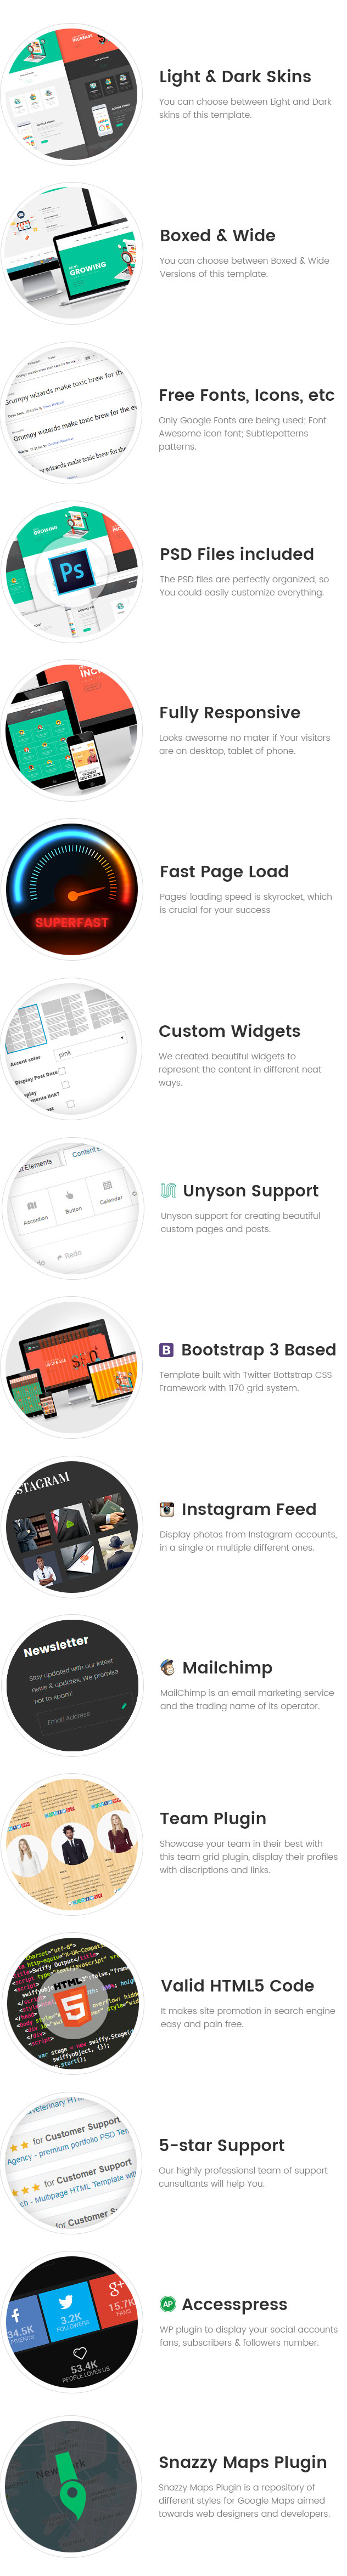 SEO Boost - SEO/Digital Company WordPress theme